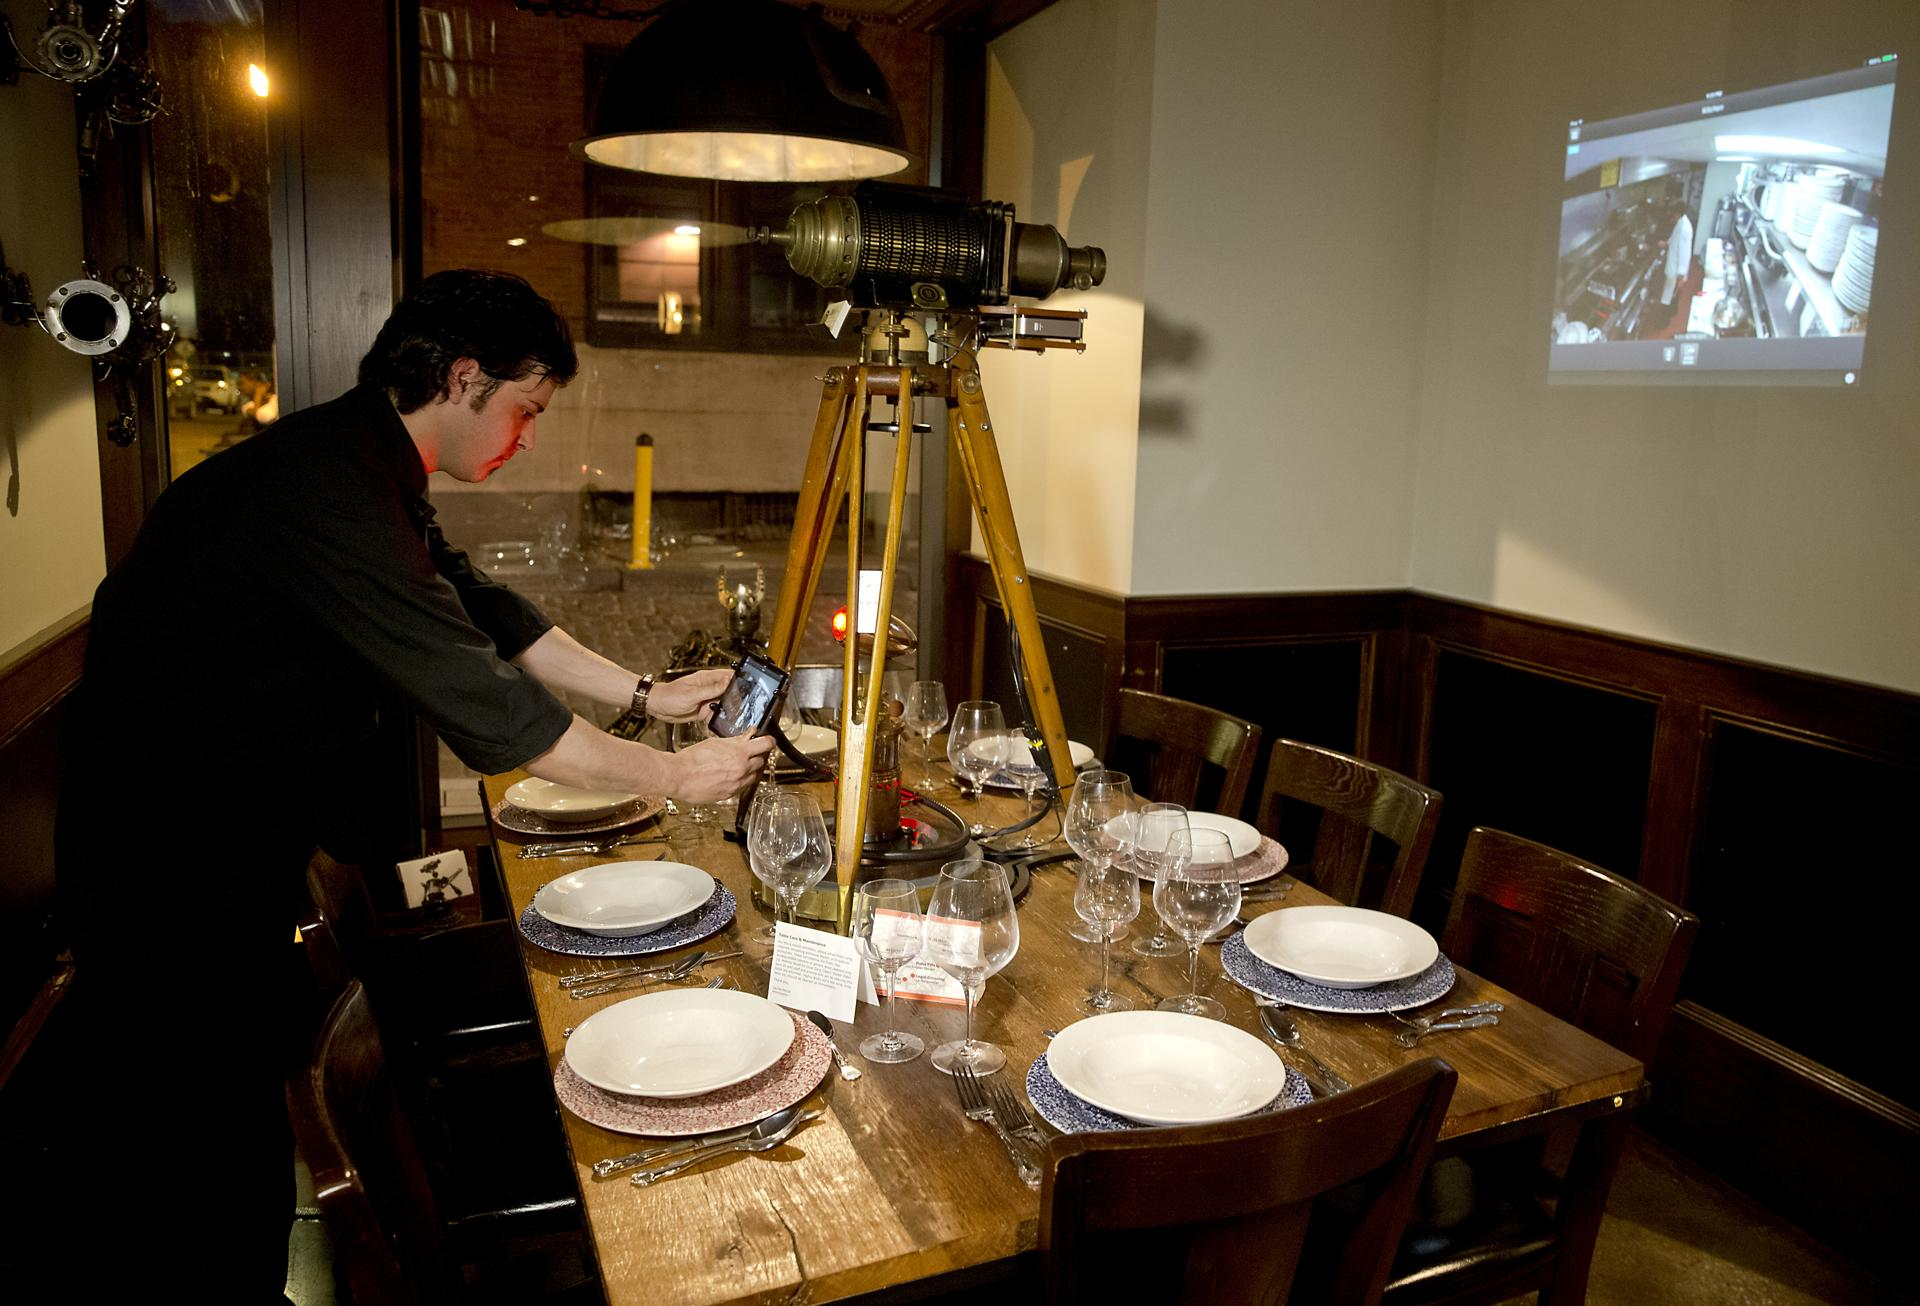 The steampunk table at Mast' features a Wi-Fi camera that shows the cooks preparing dishes.